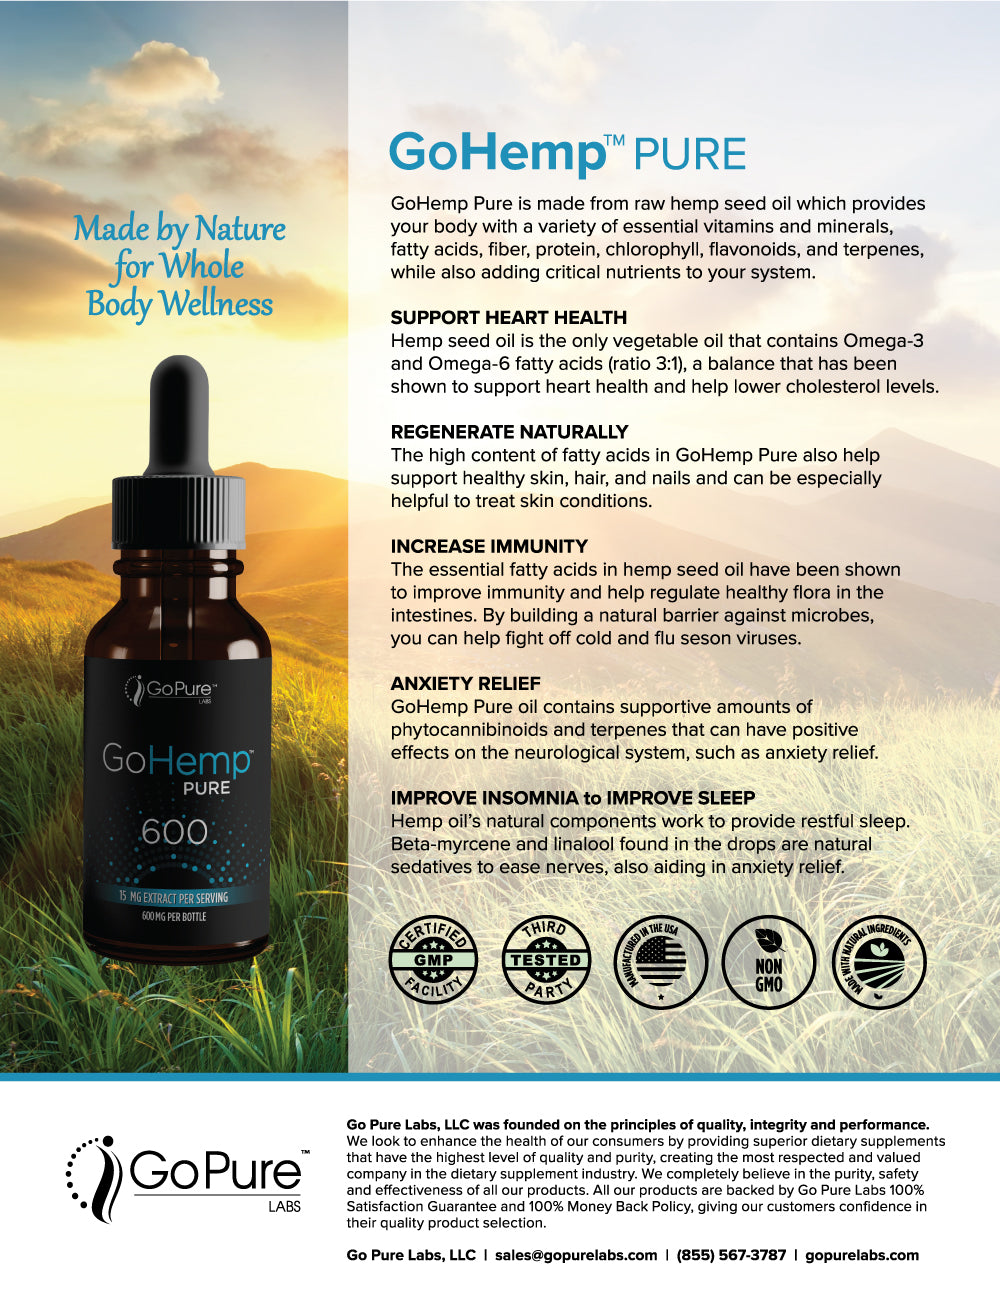 Go Pure GoHemp 600 MG CO2 Hemp Extract - 2 Ounce